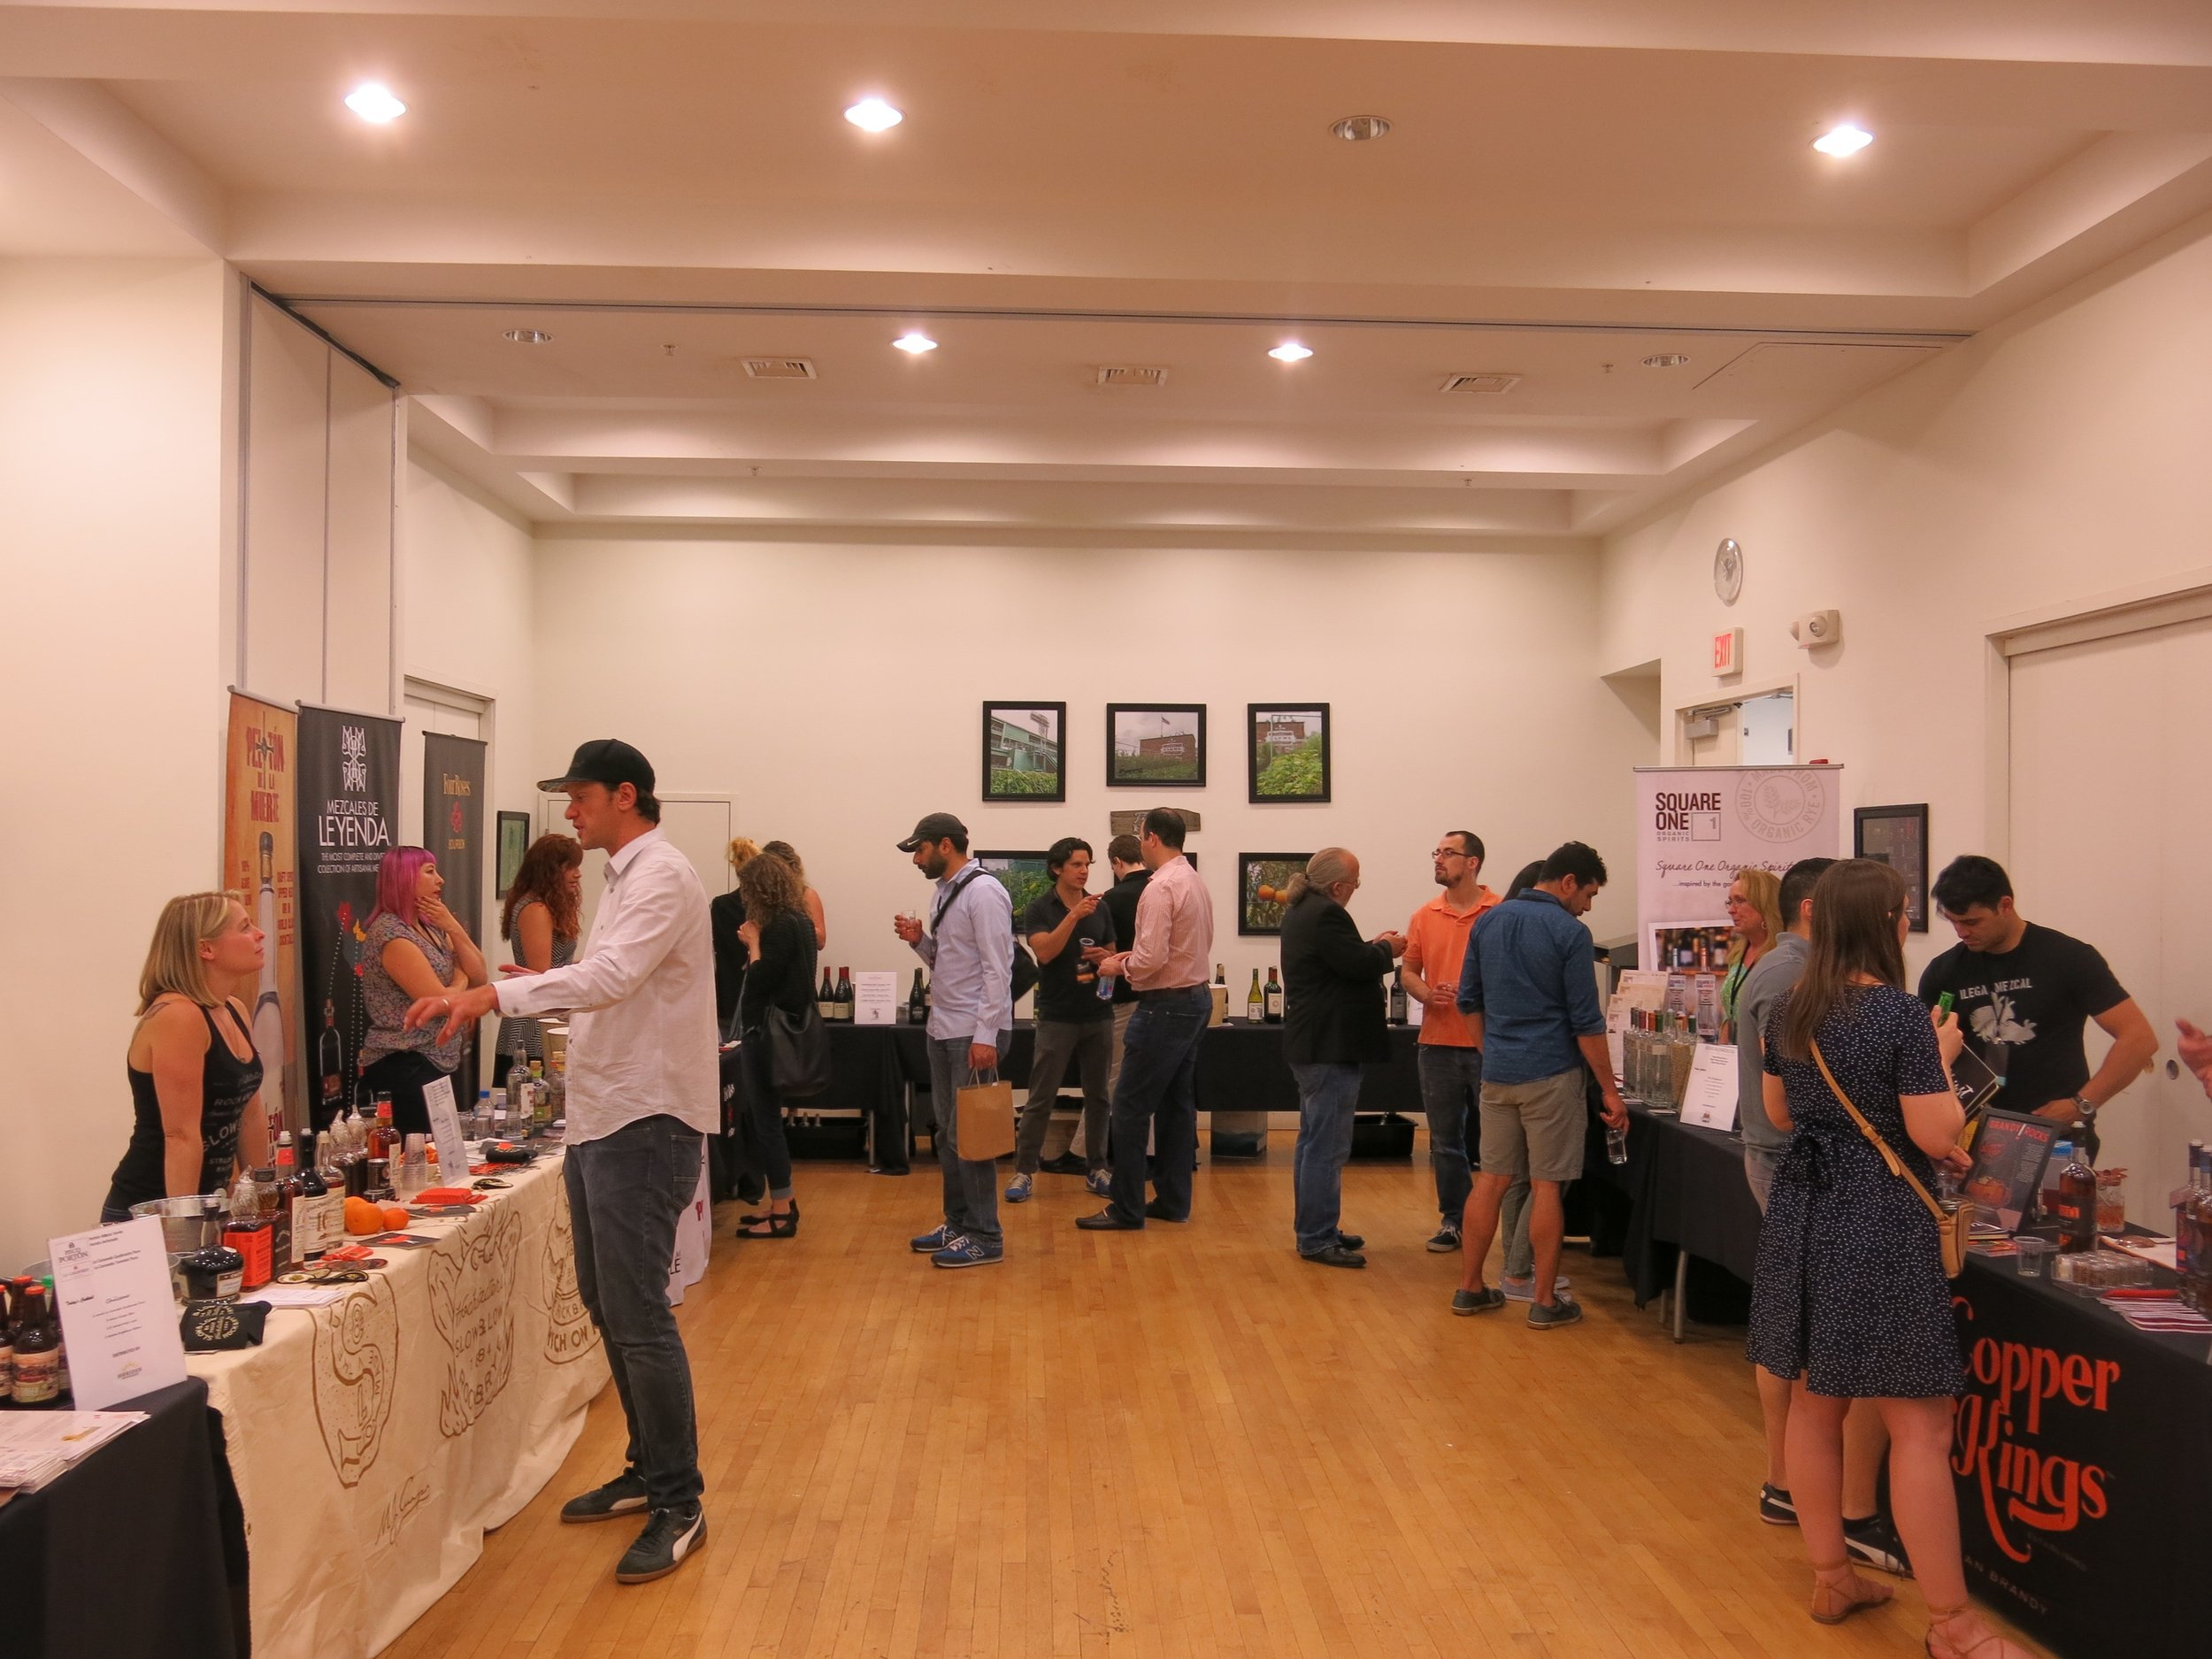 The Inspired Beverage Tasting pop-up gave attendees a chance to try a bevy of spirits and talk with brand representatives from all over the country. I sampled more mezcal than I care to admit.